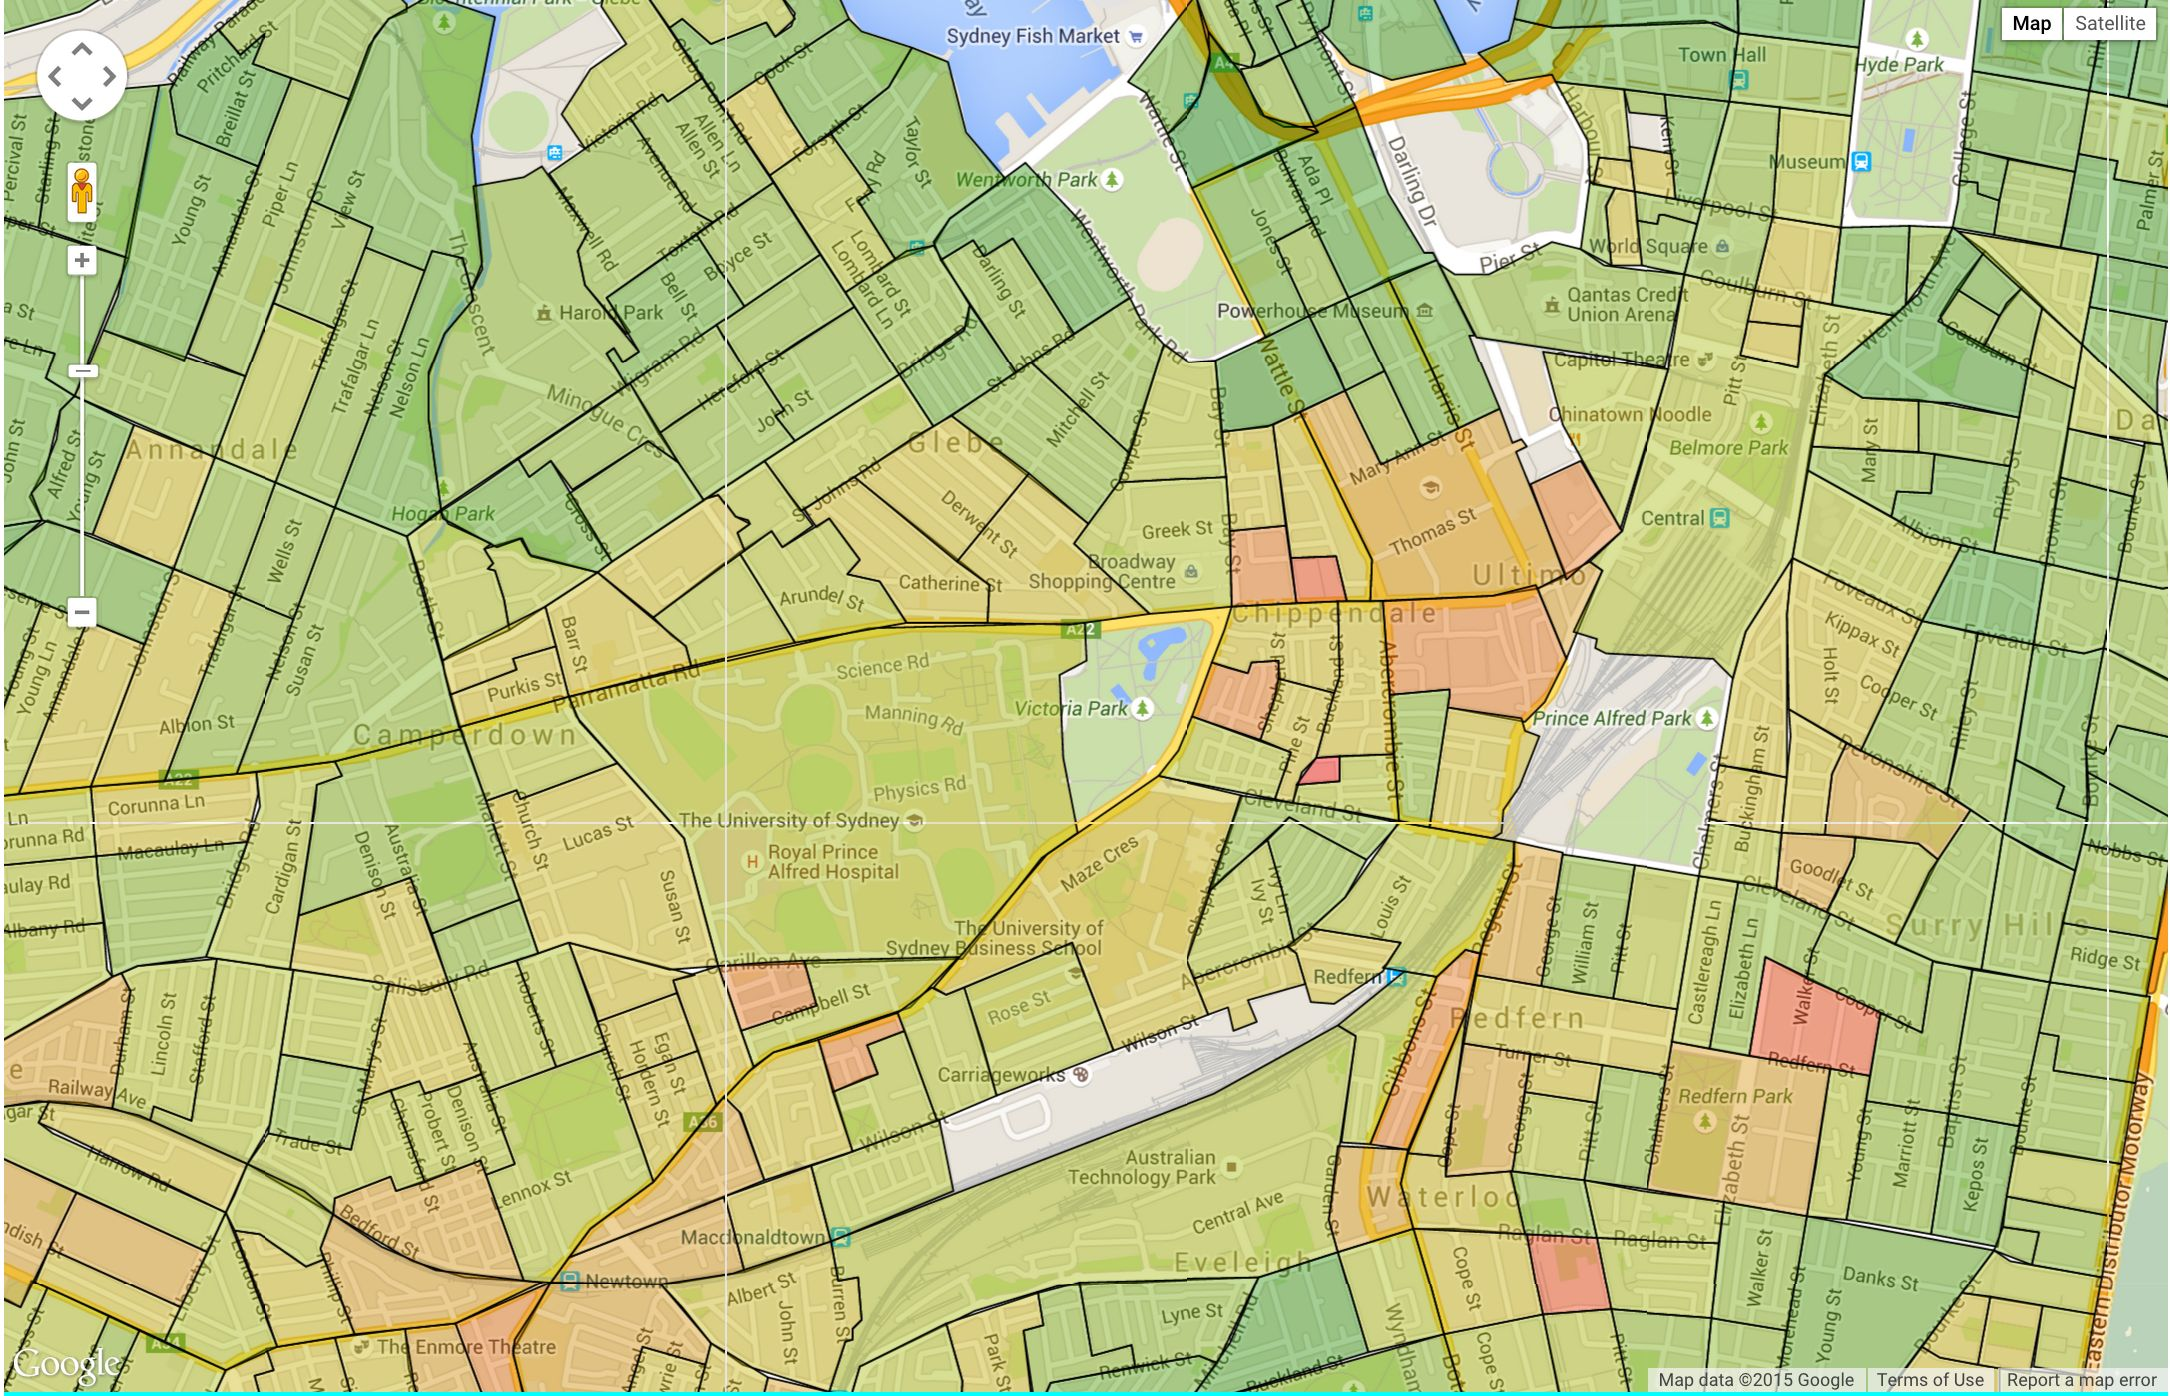 Top Suburbs: Public Housing Heat Map on map of northern nsw, map of lane cove tunnel, map of troon, map of chipping campden, map of arden way, map of woolloomooloo, map of the lizard, map of penzance, map of isle of wight, map of sway, map of ventnor, map of kearns, map of ravenglass, map of haymarket, map of old sac, map of yosemite lodge, map of spectacle island, map of crows nest, map of riverwood, map of newtown,